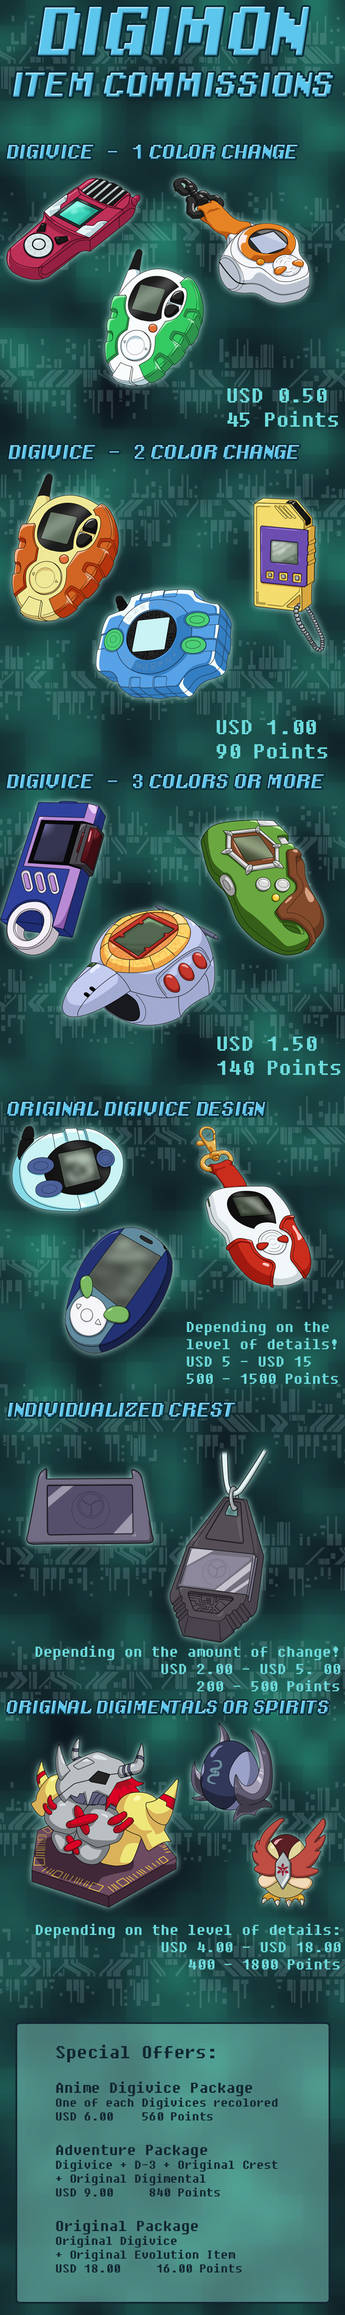 Digimon - Digivices and more - Comission Prices